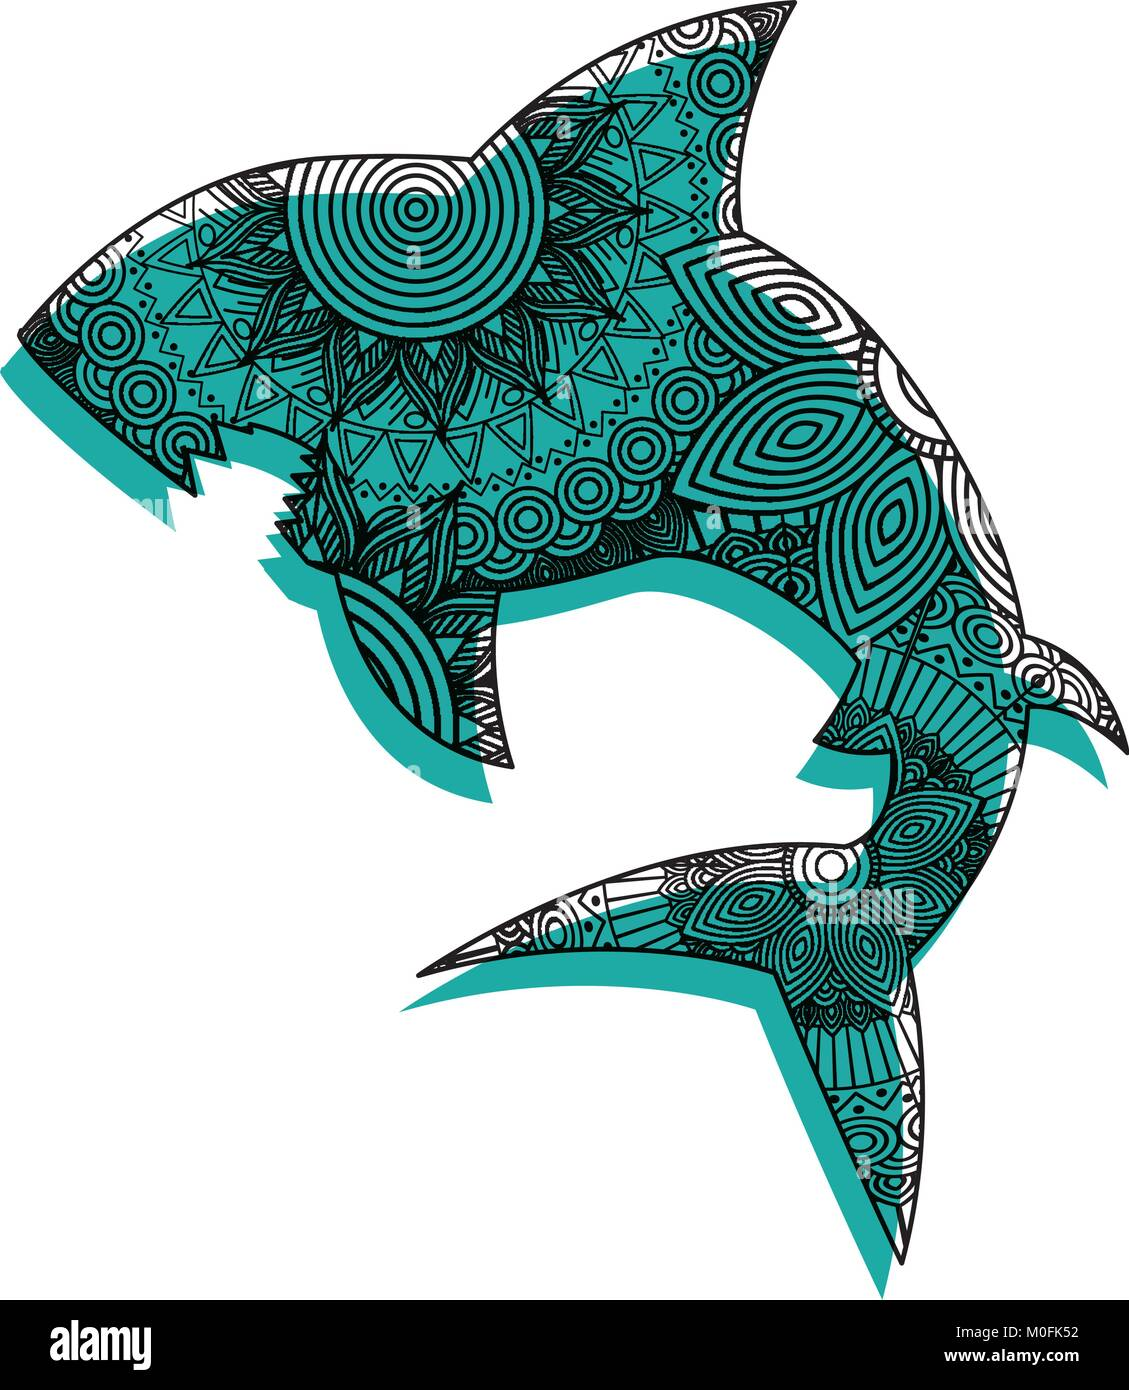 Shark Tribal Tattoo Stockfotos & Shark Tribal Tattoo Bilder - Alamy